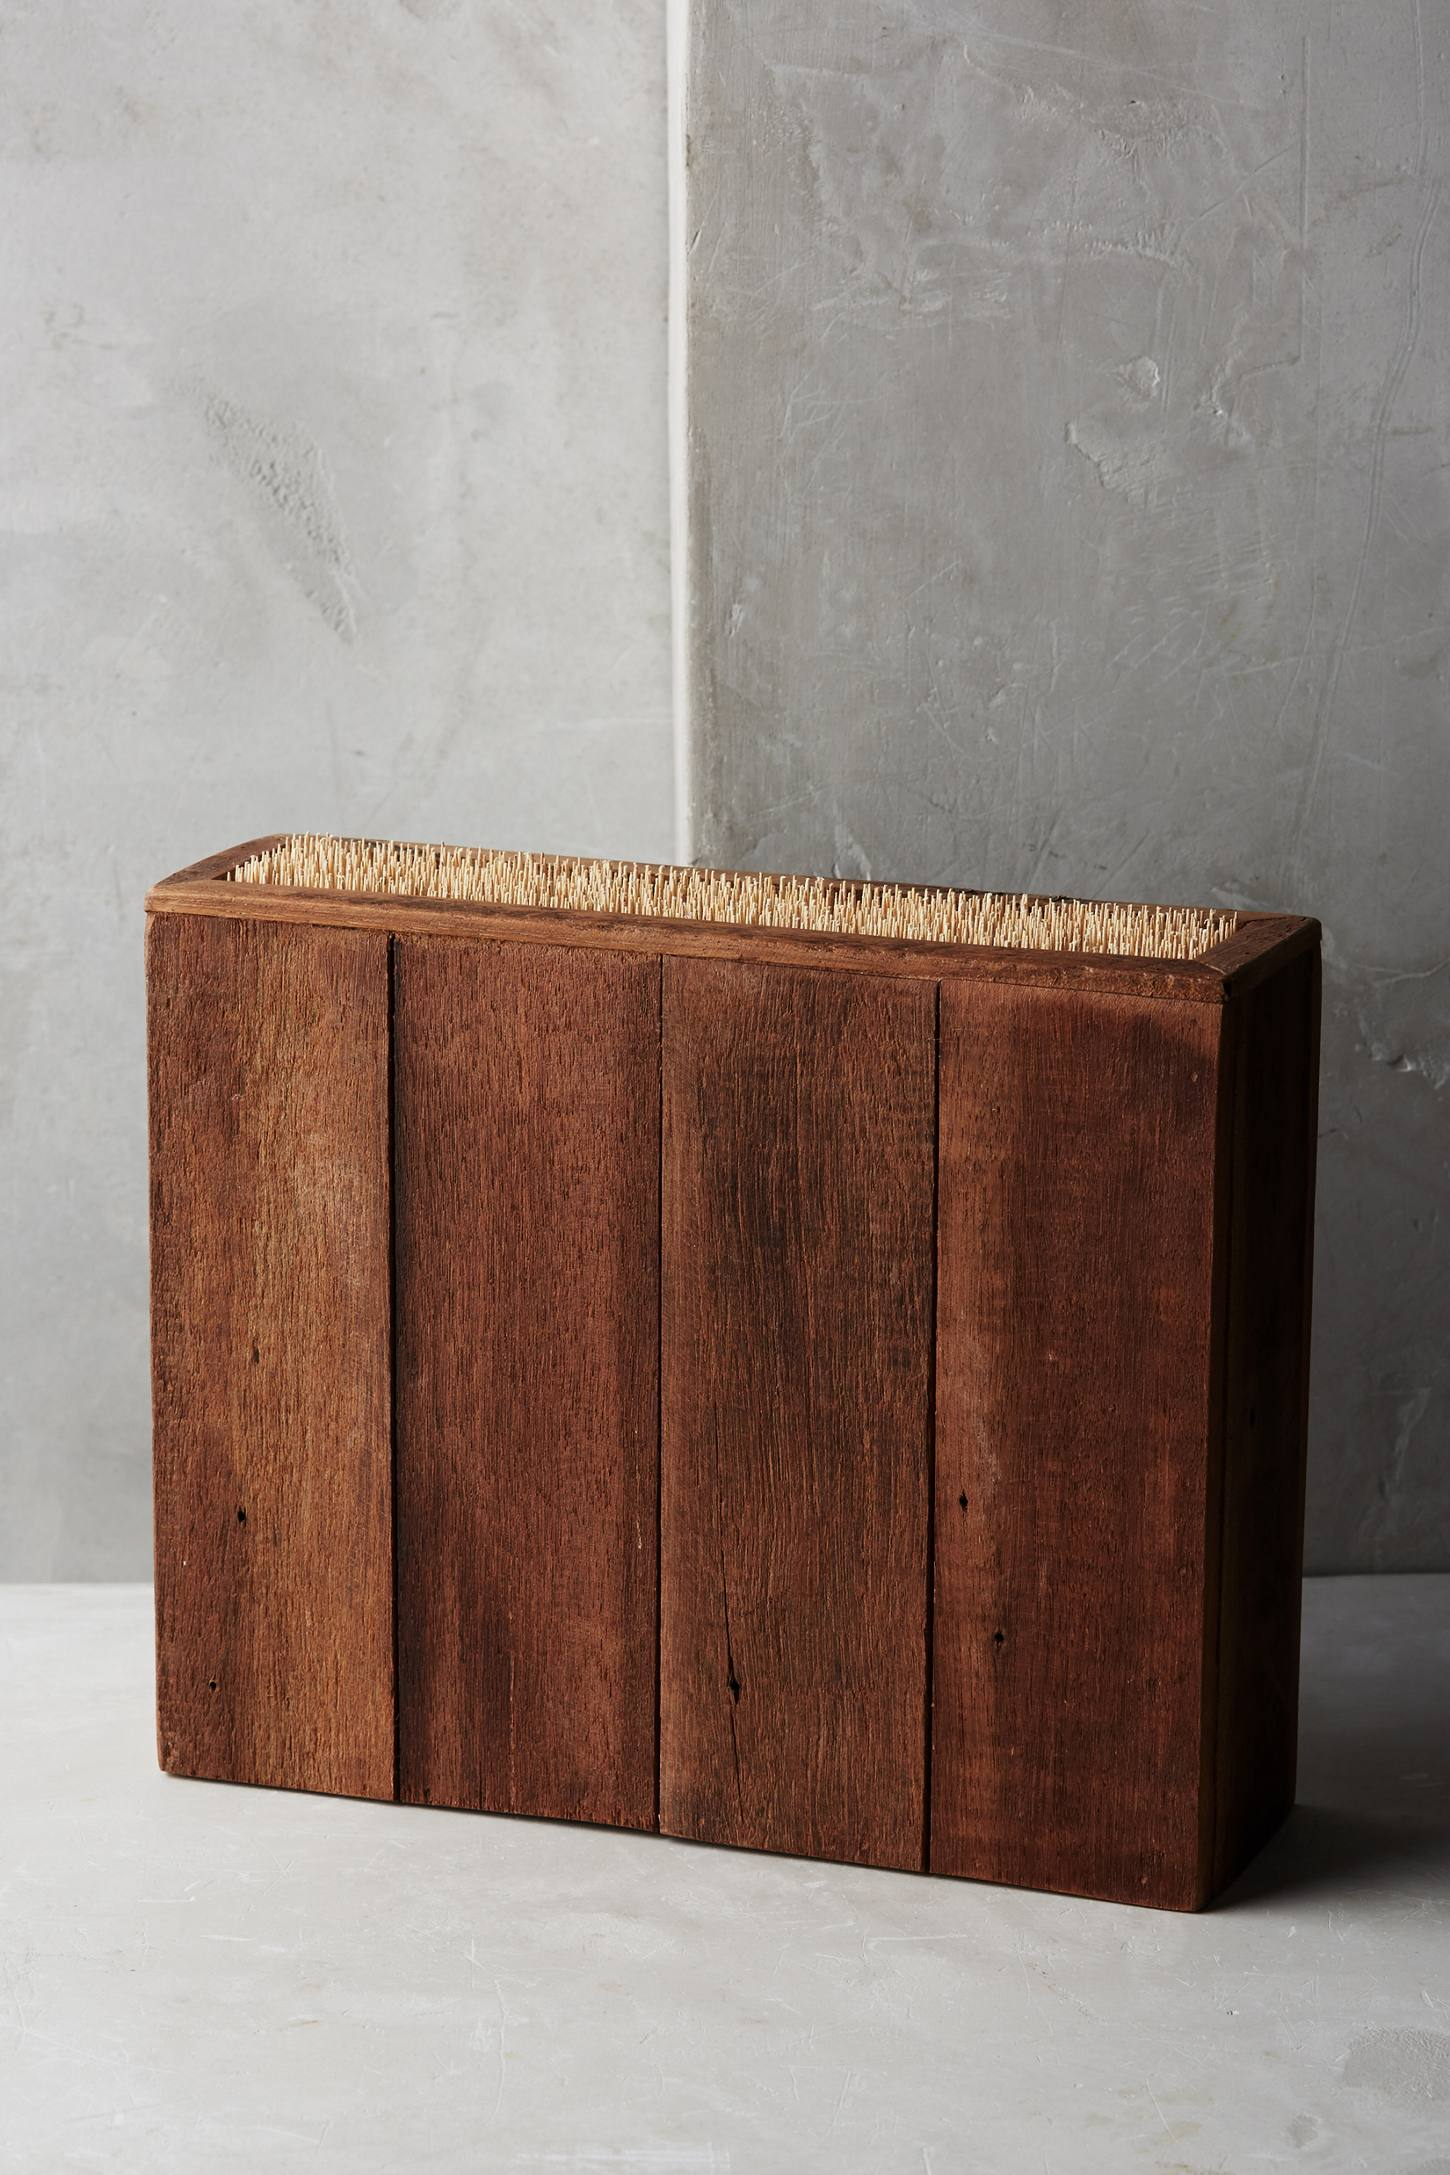 Slide View: 1: Bamboo Knife Block